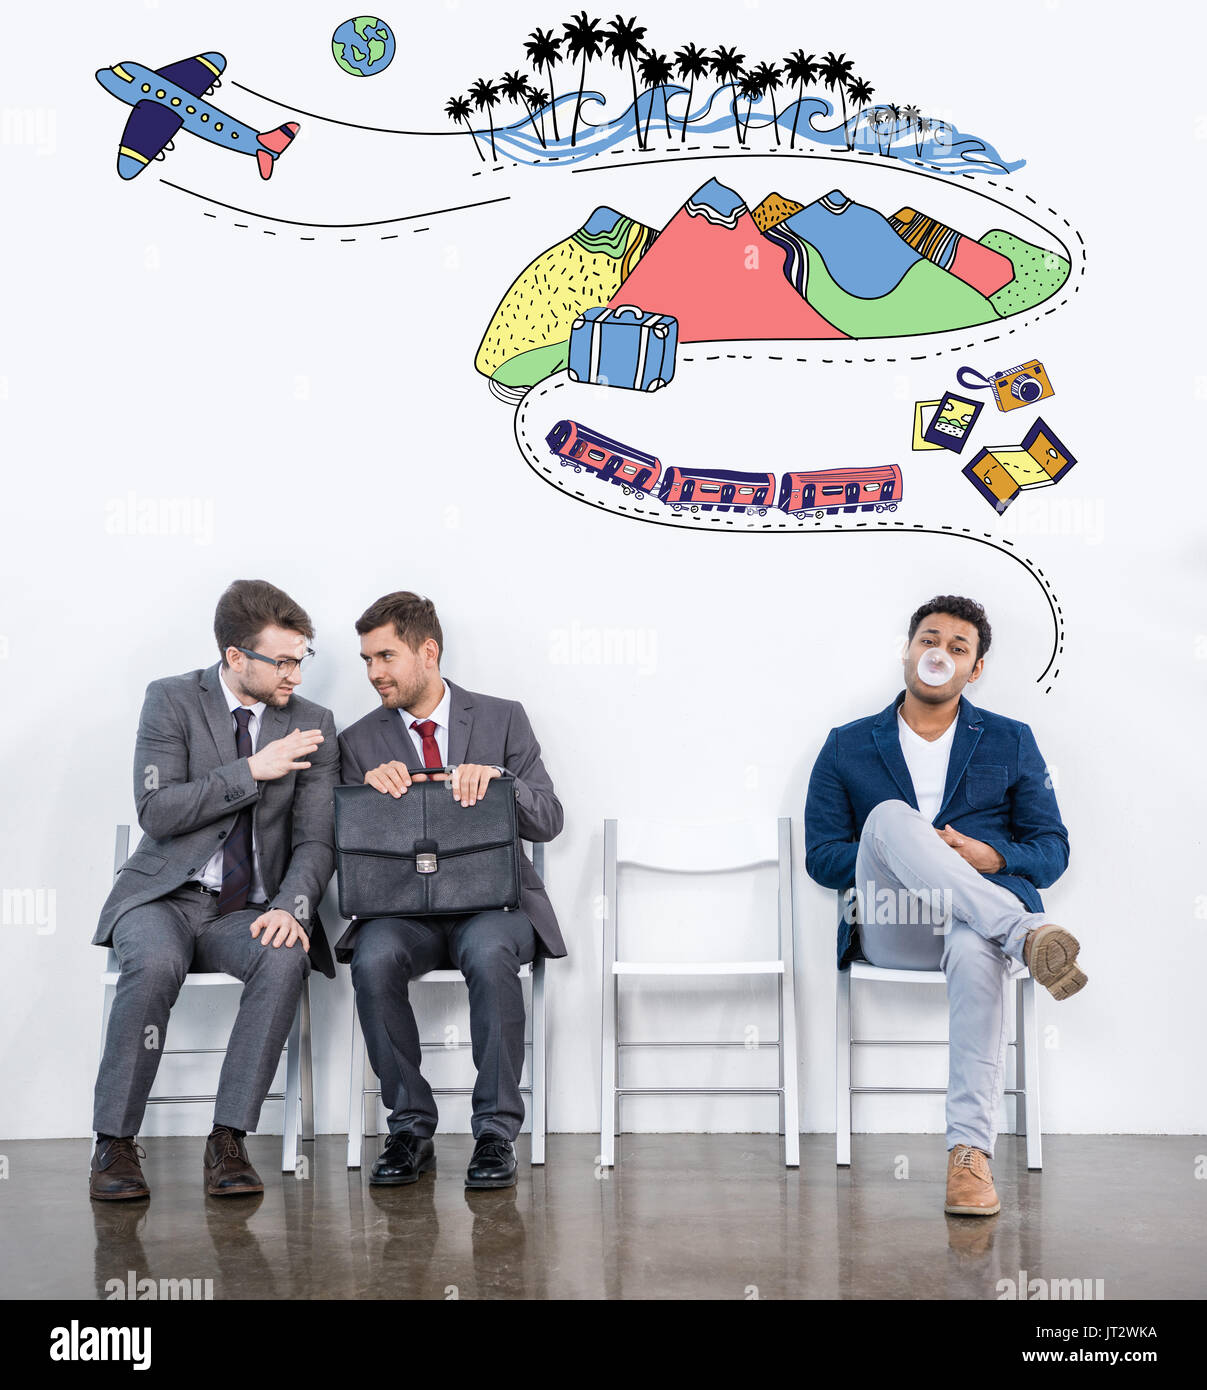 businessmen sitting on chairs - Stock Image